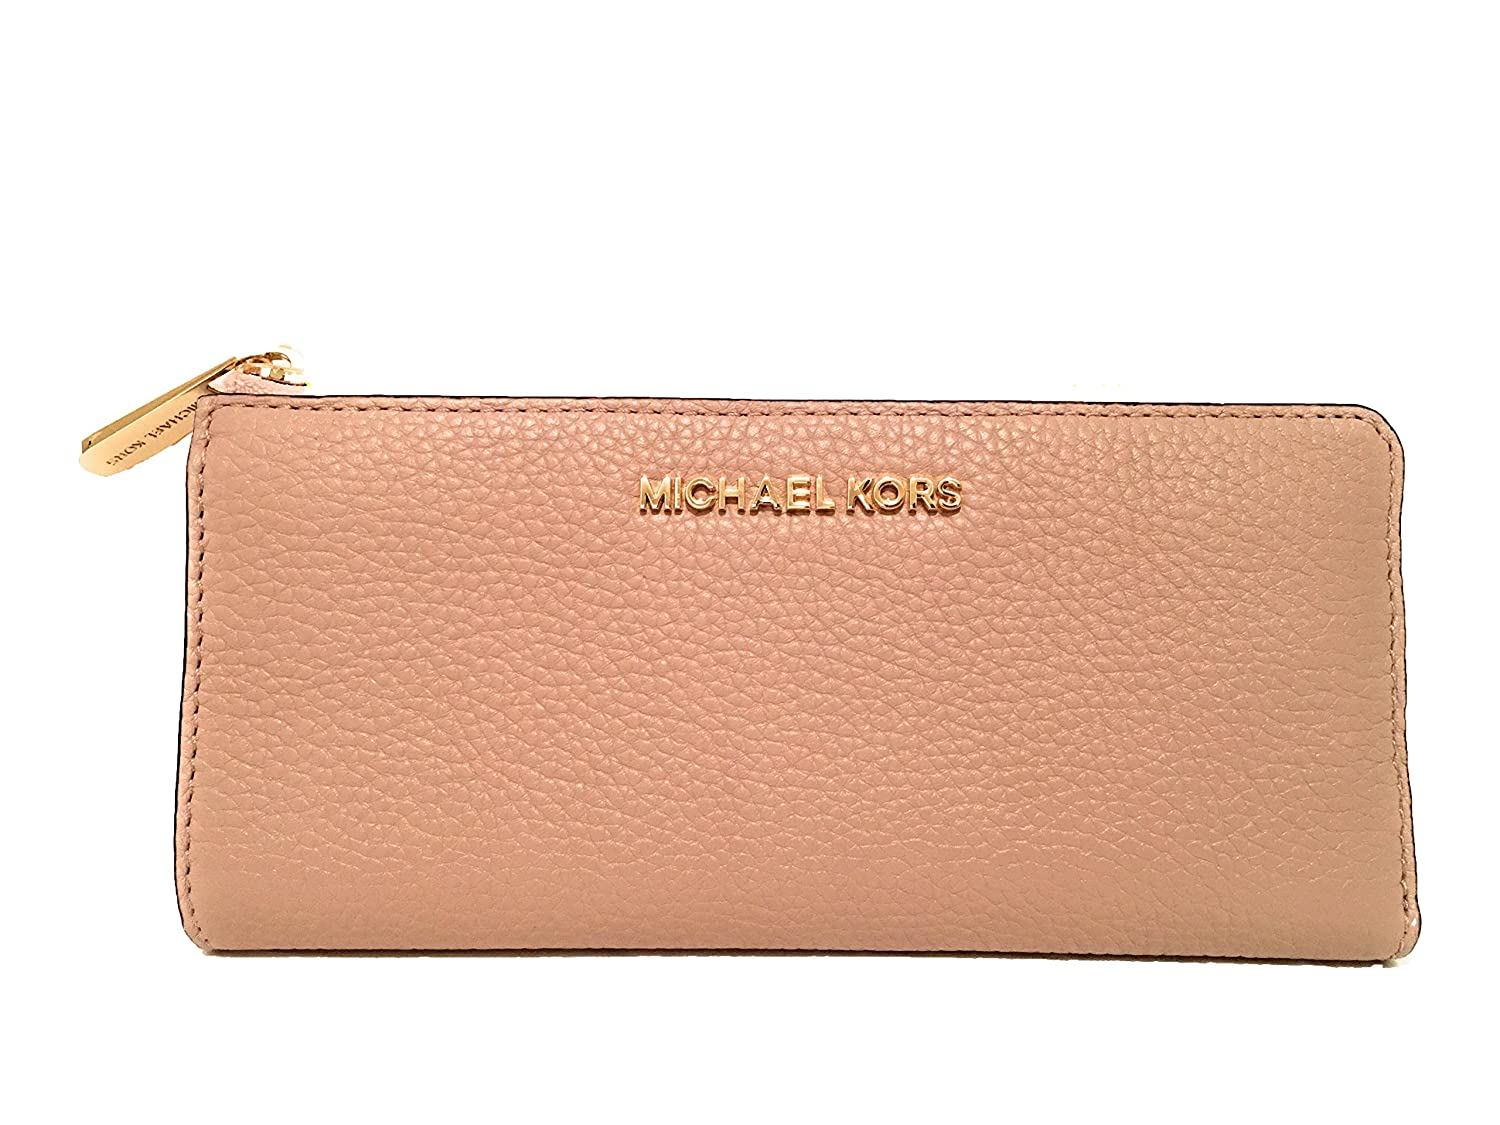 6c0daed6617c Michael Kors Bedford Large Three Quarter Zip Around Pebbled Leather Wallet  Ballet at Amazon Women s Clothing store